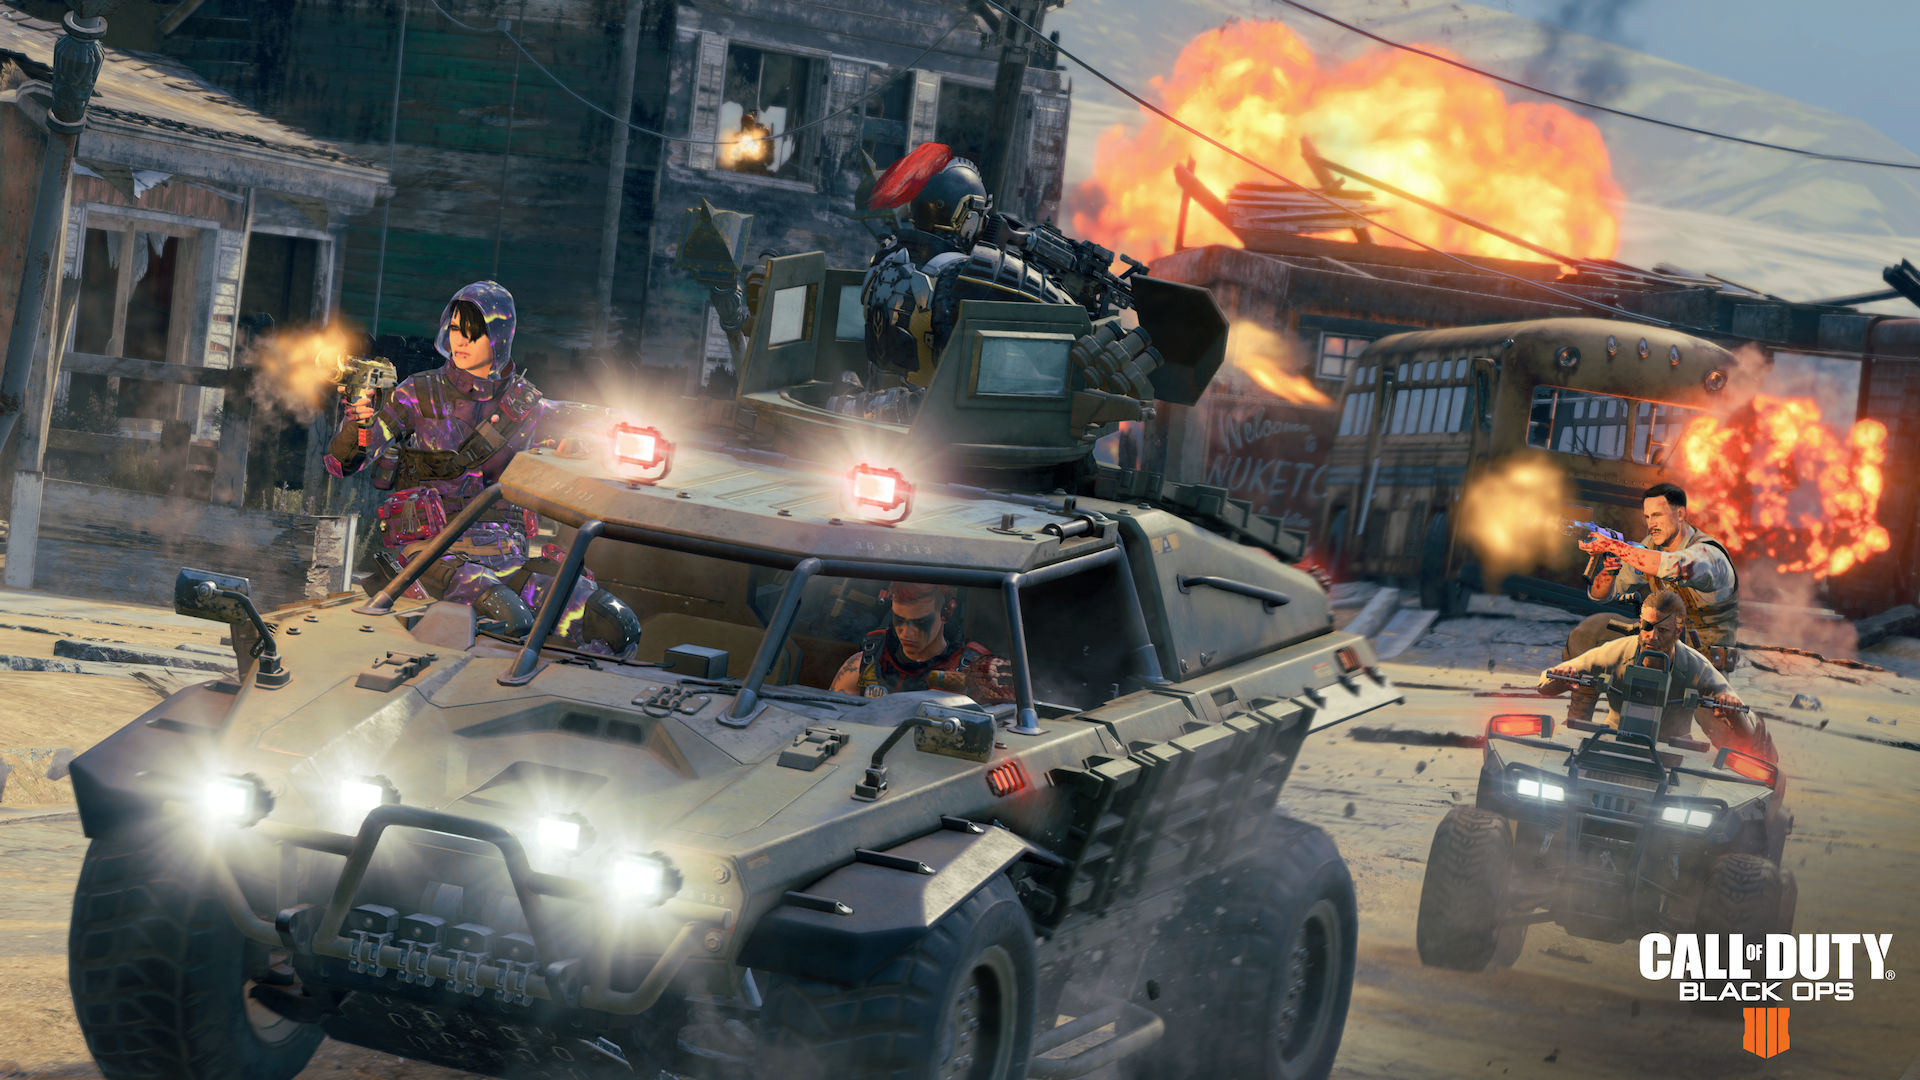 Call Of Duty Black Ops 4 July 23 Hot Pursuit Returns And More